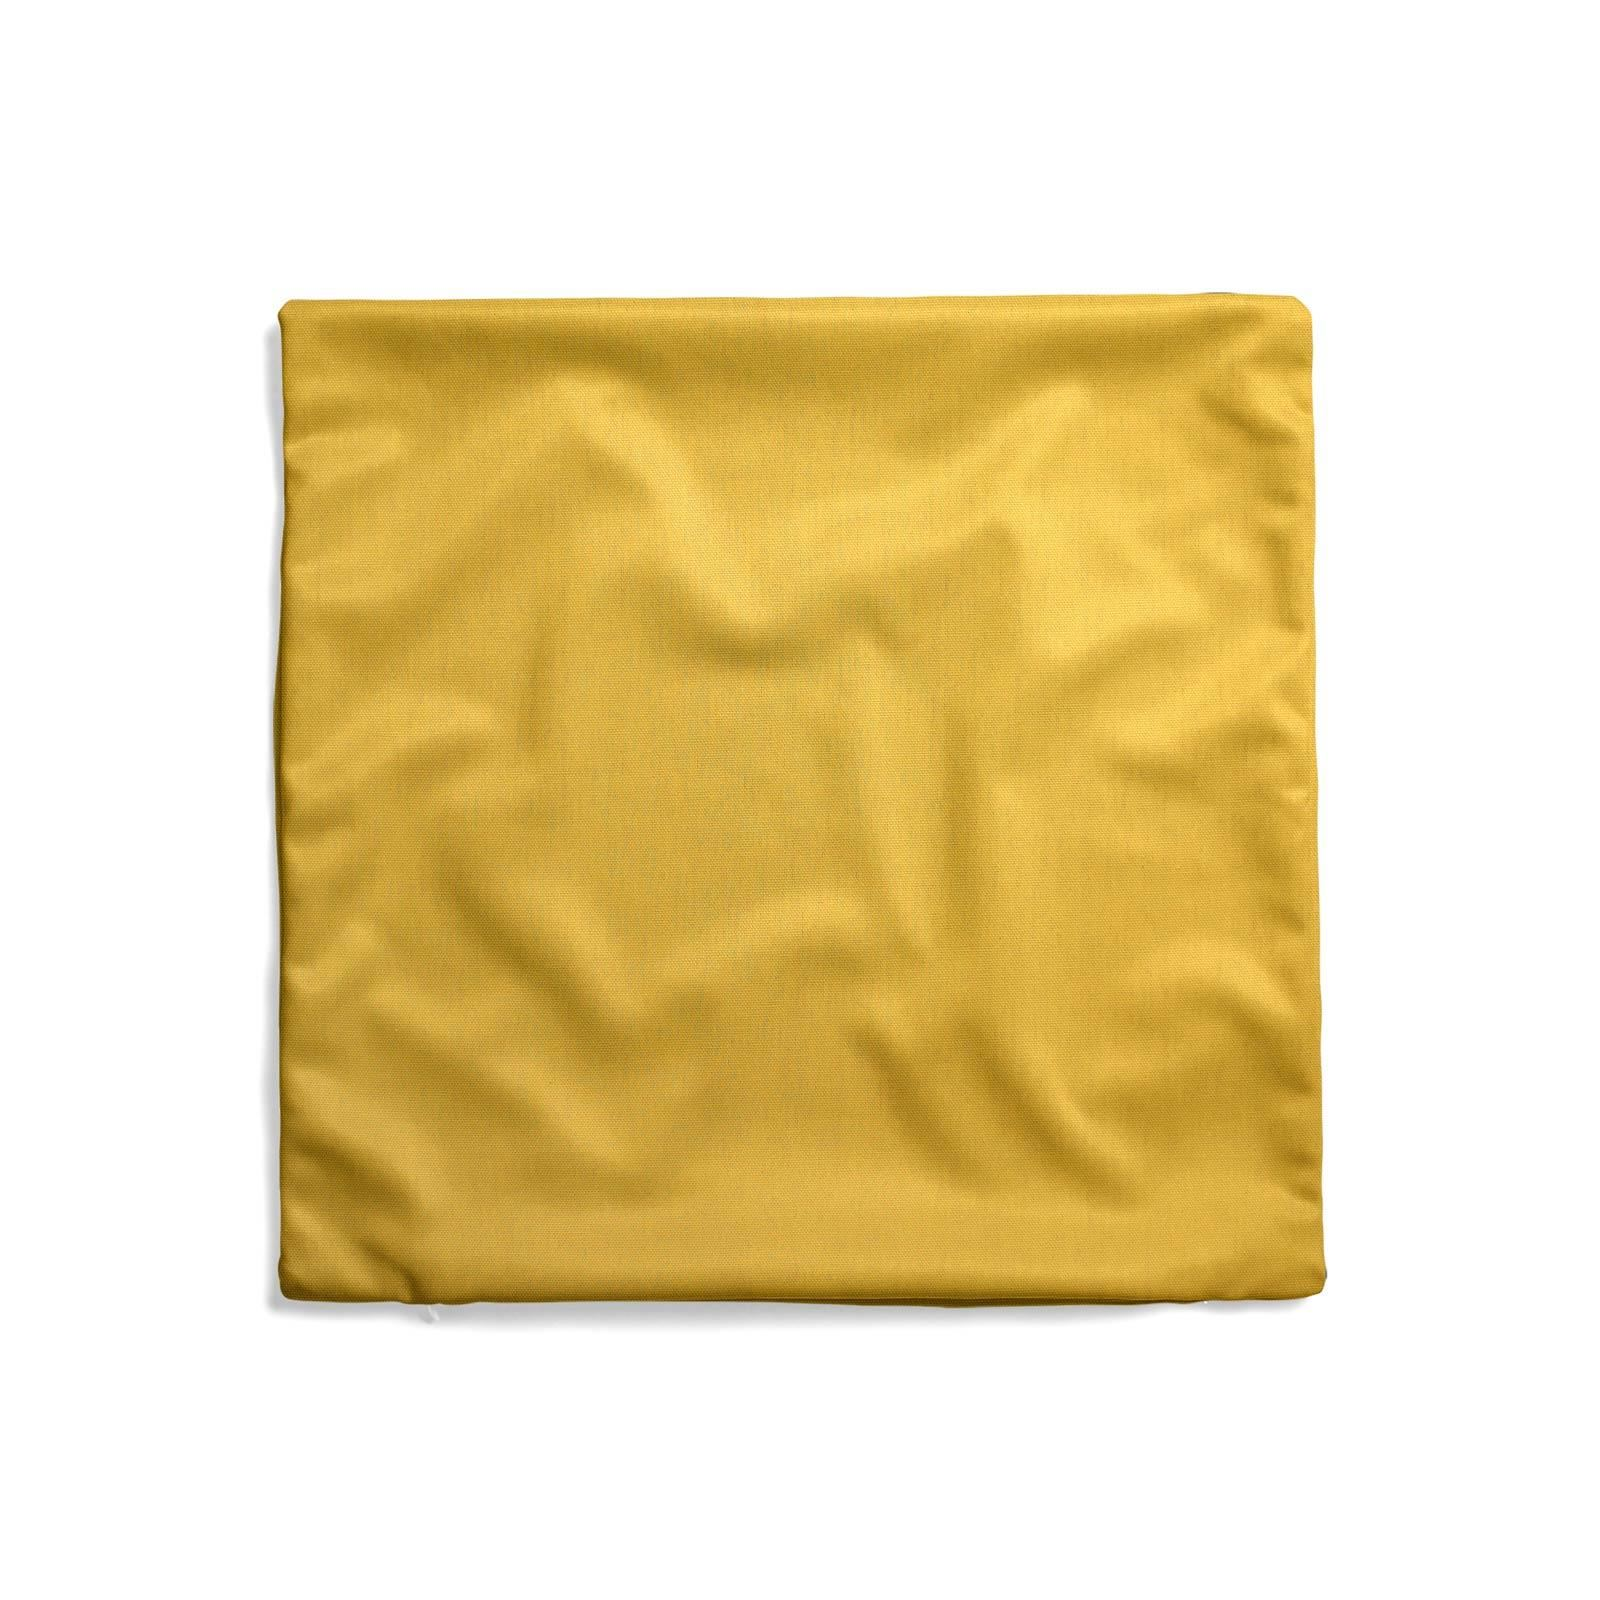 Grey-Ochre-Mustard-Cushion-Cover-Collection-17-034-18-034-Covers-Filled-Cushions thumbnail 70